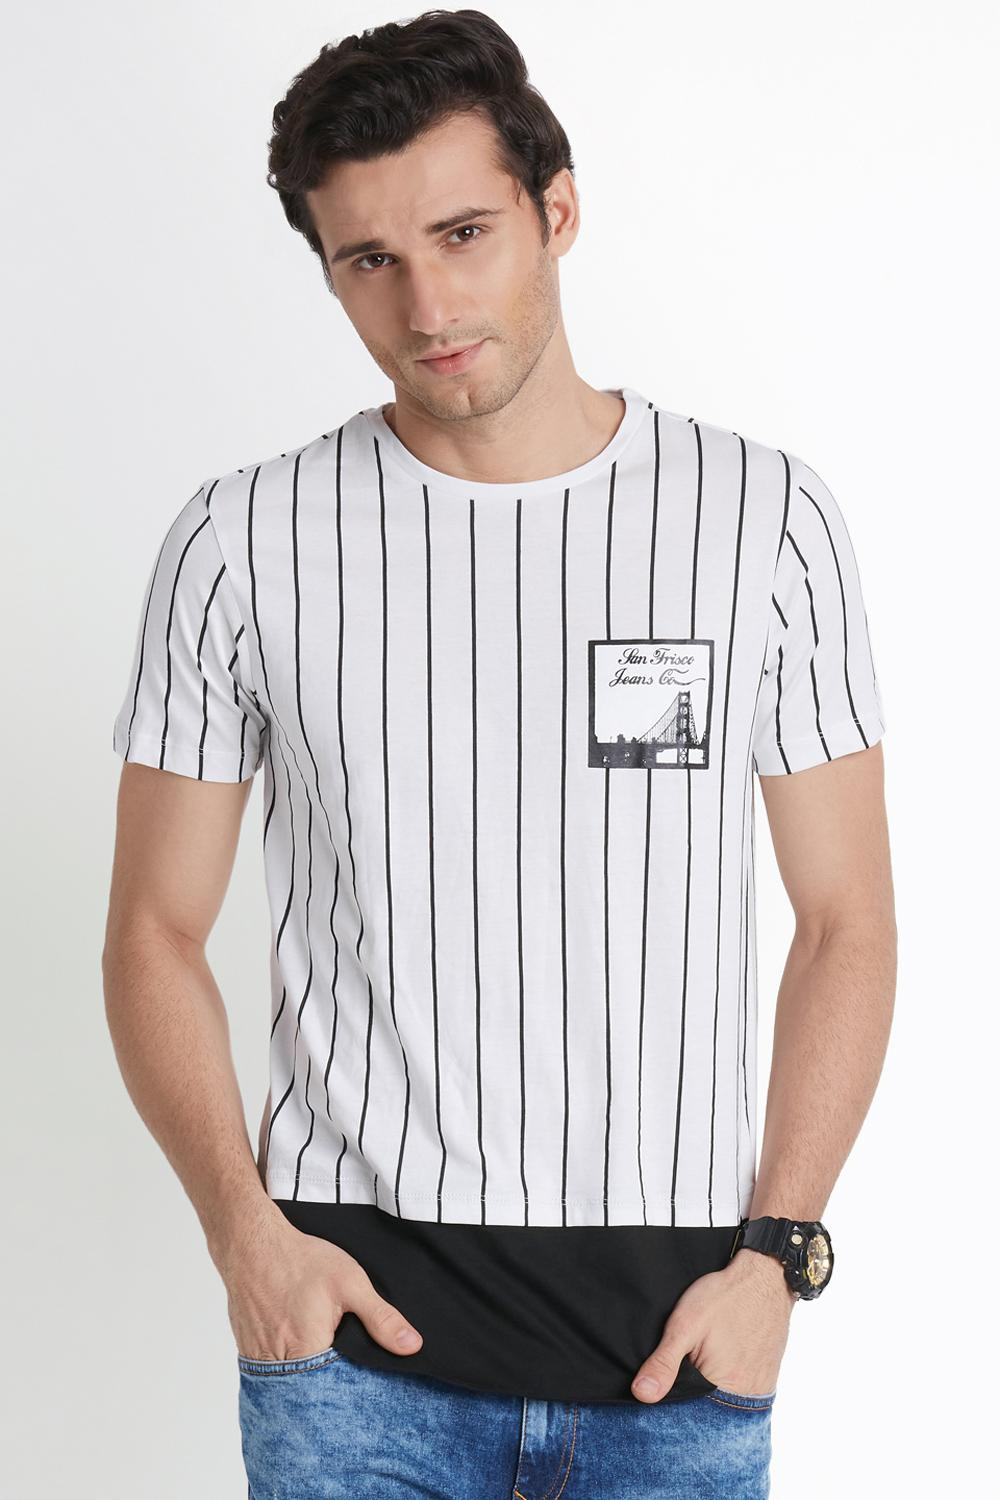 75407d03a35 Buy T Shirts for Men Online with Best Price in India